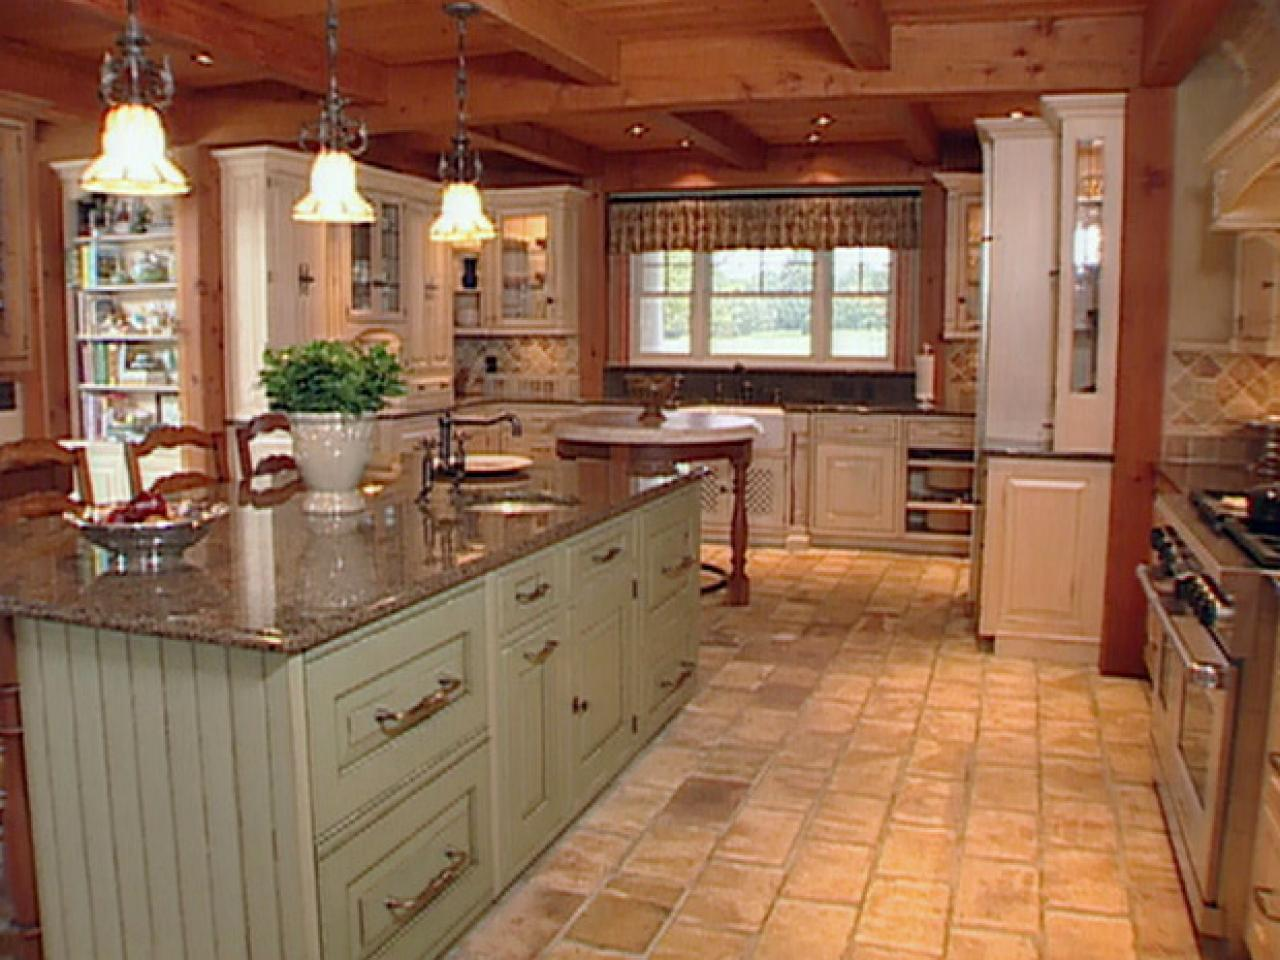 Farmhouse Kitchen Tile Floors Pictures Of Kitchen Design Ideas Remodel And Decor